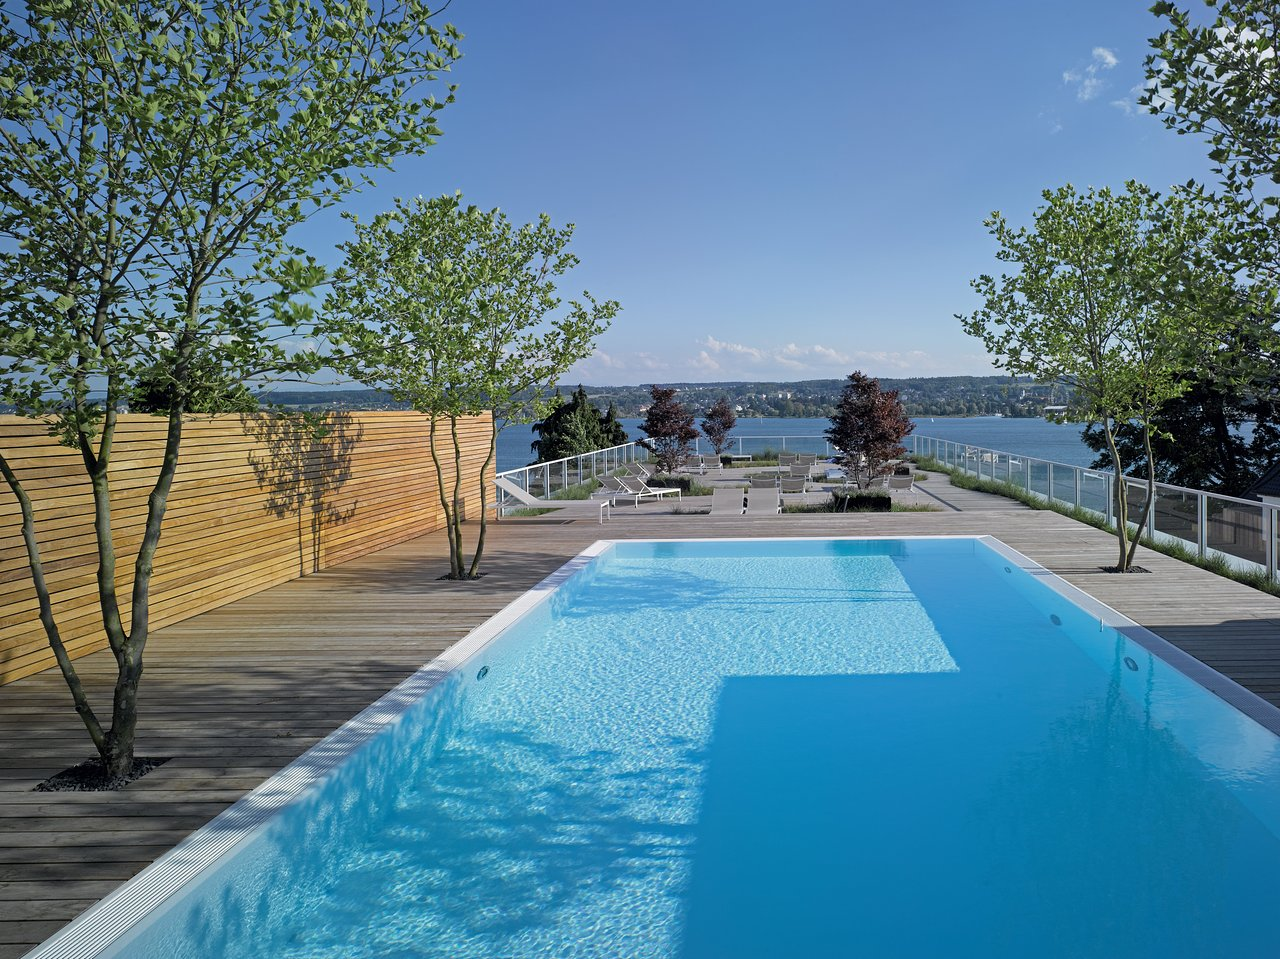 Ferienwohnung Mit Pool Am Bodensee Riva Das Hotel Am Bodensee Updated 2019 Prices Reviews And